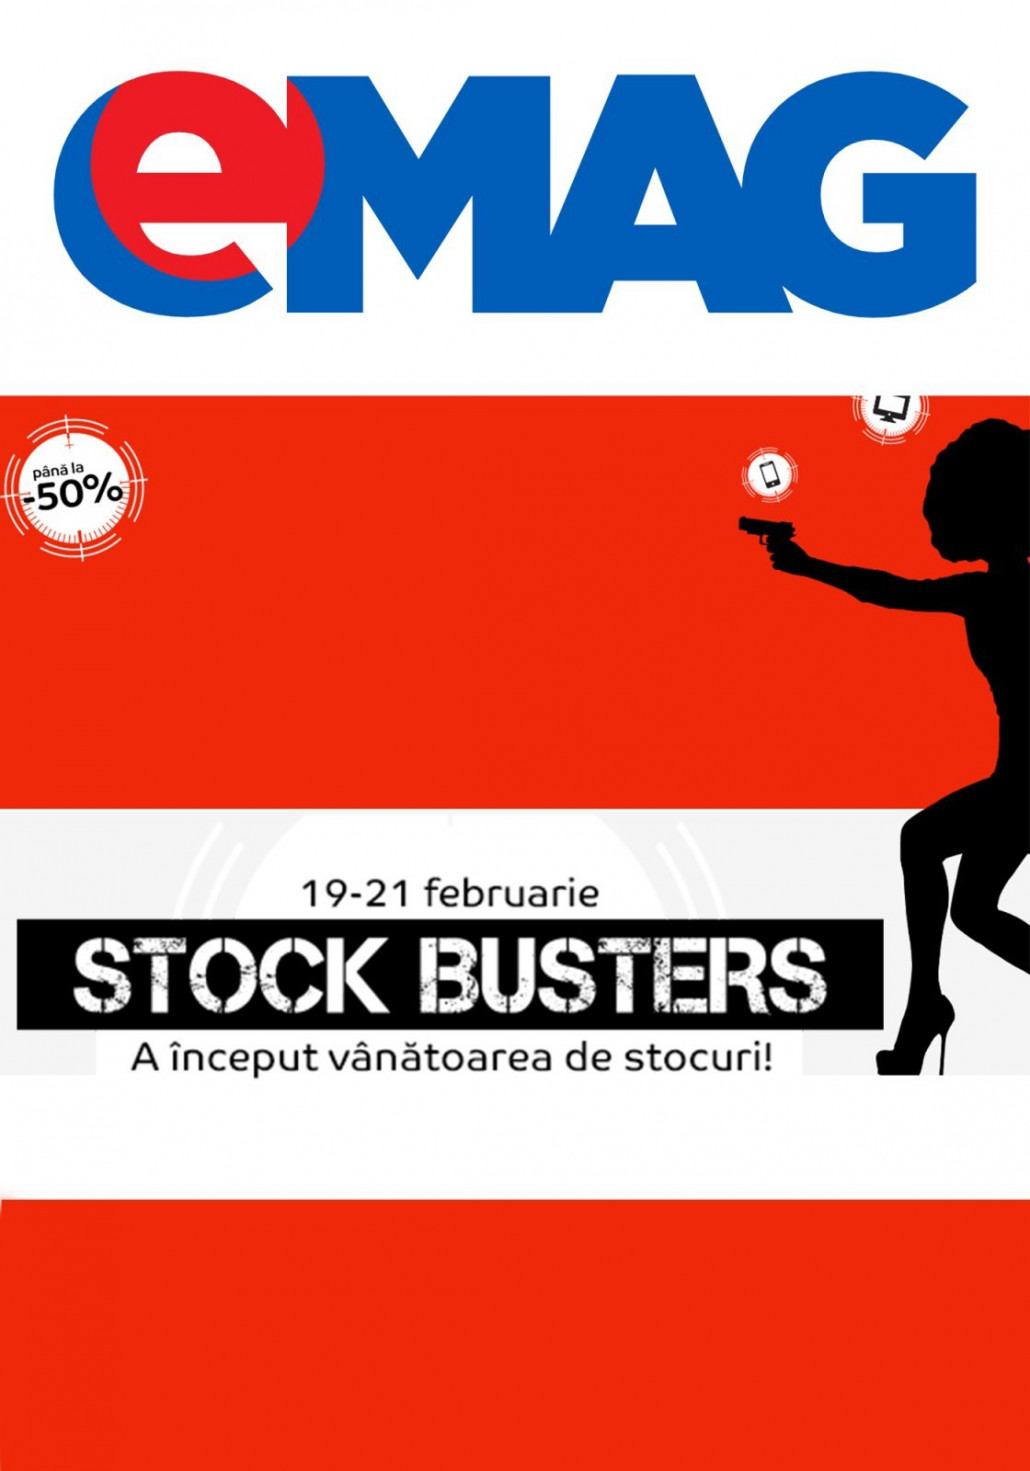 Catalog eMag - Stock Busters -50%! 19 Februarie 2019 - 21 Februarie 2019